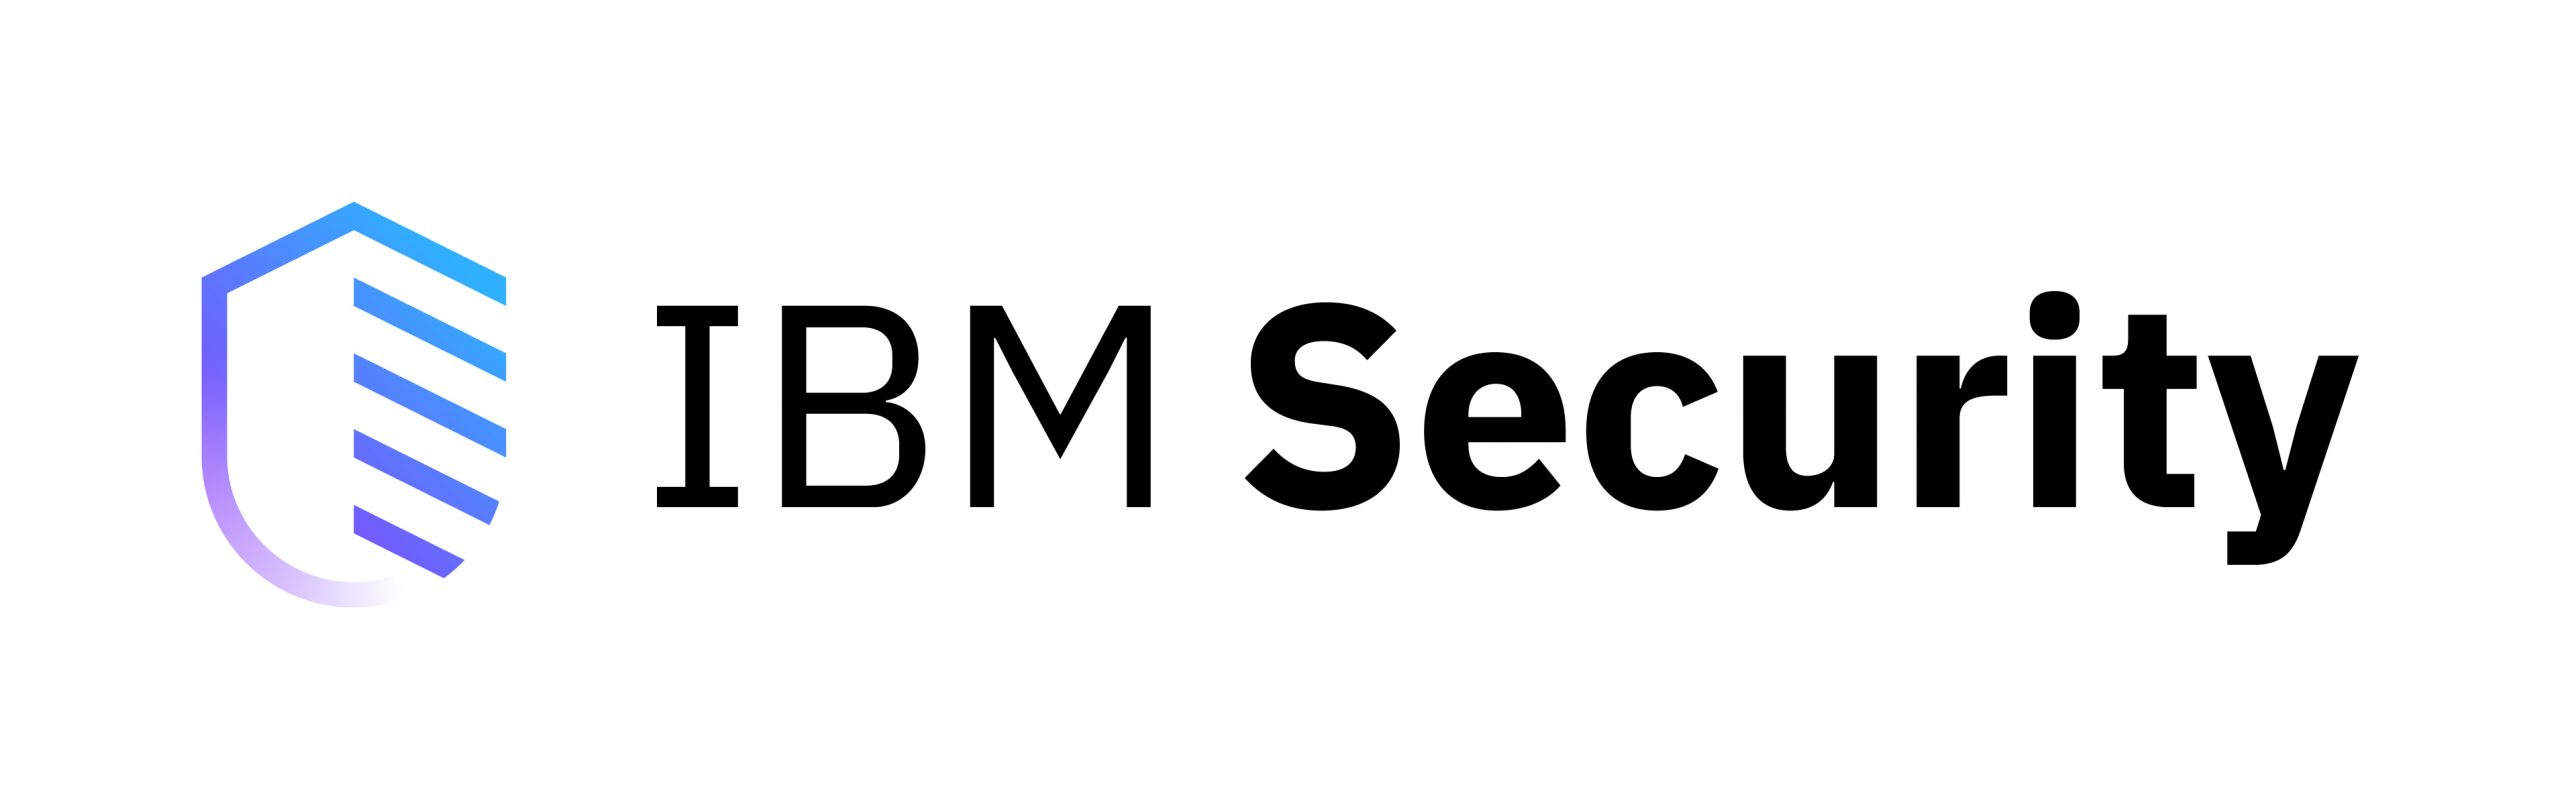 IBM Security